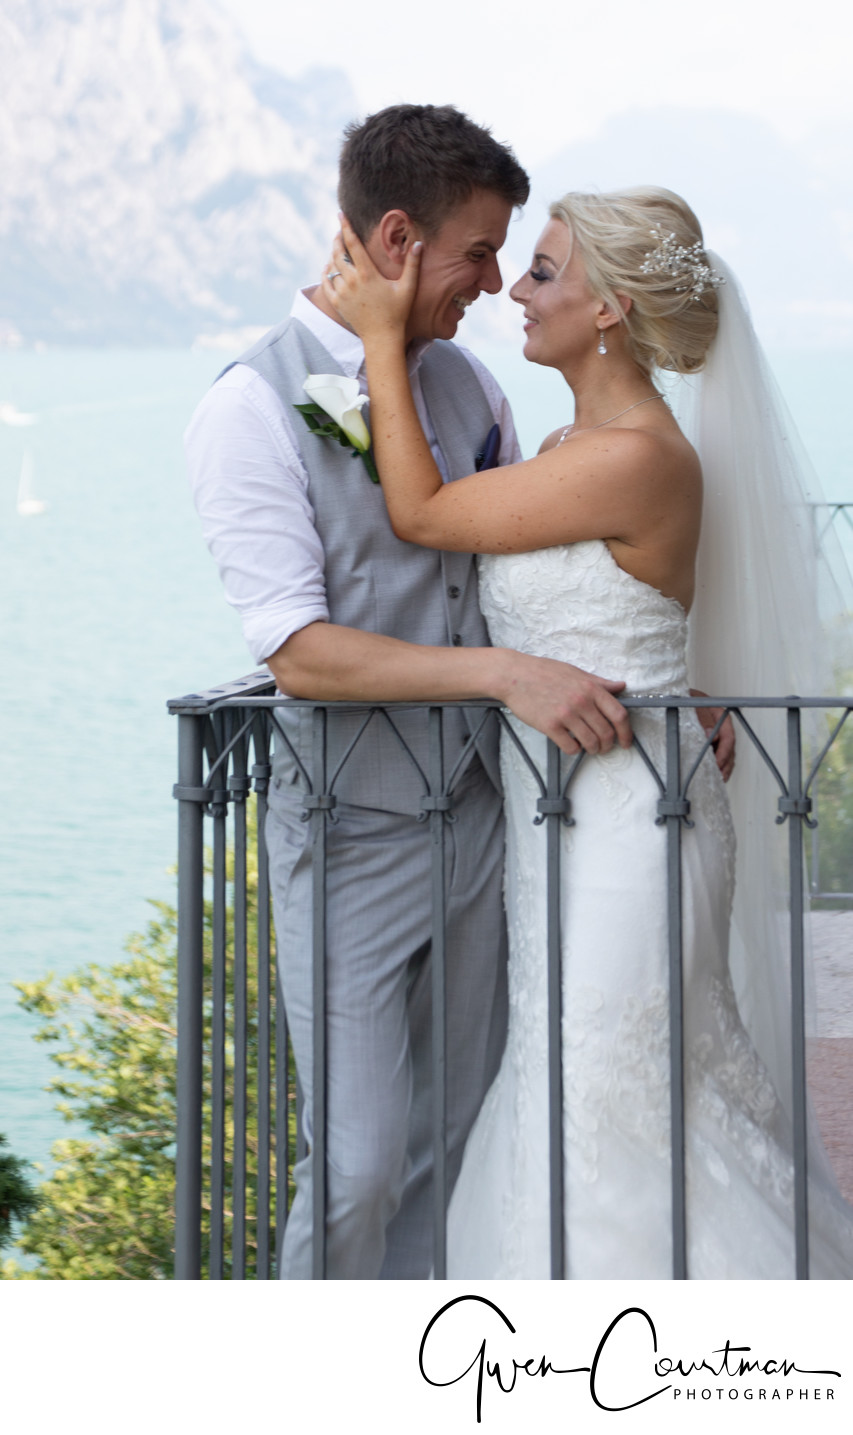 Sally & Elliot, romantic photos in Malcesine Castle.